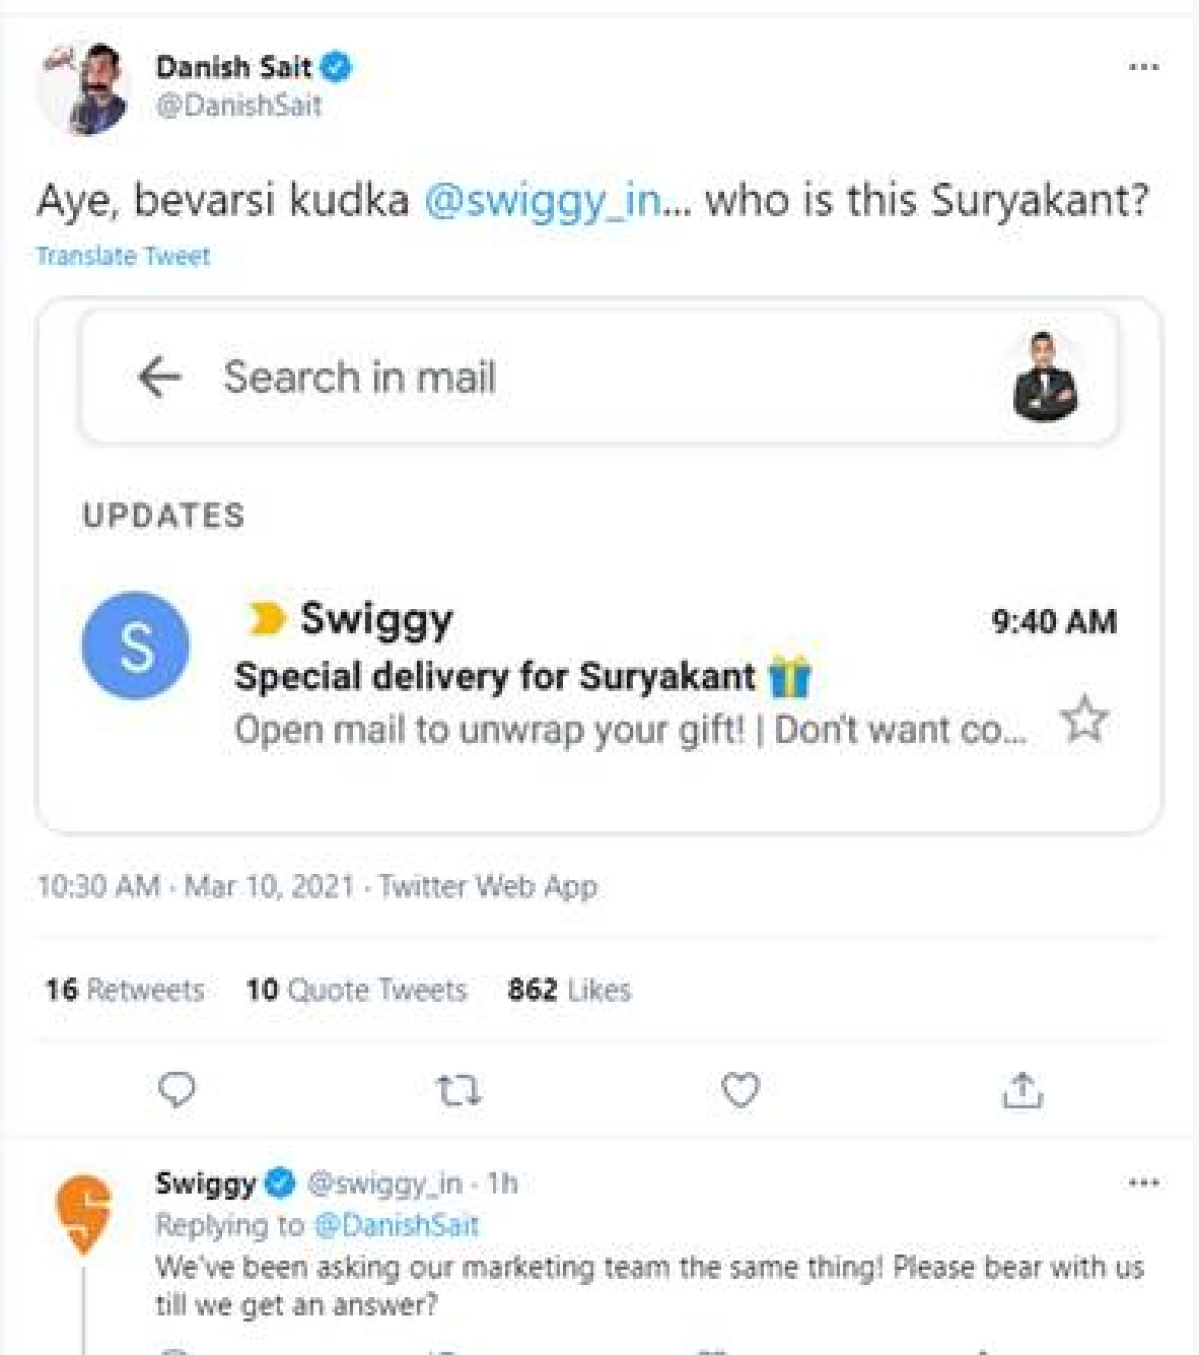 Why is Swiggy addressing all its users as 'Suryakant'?